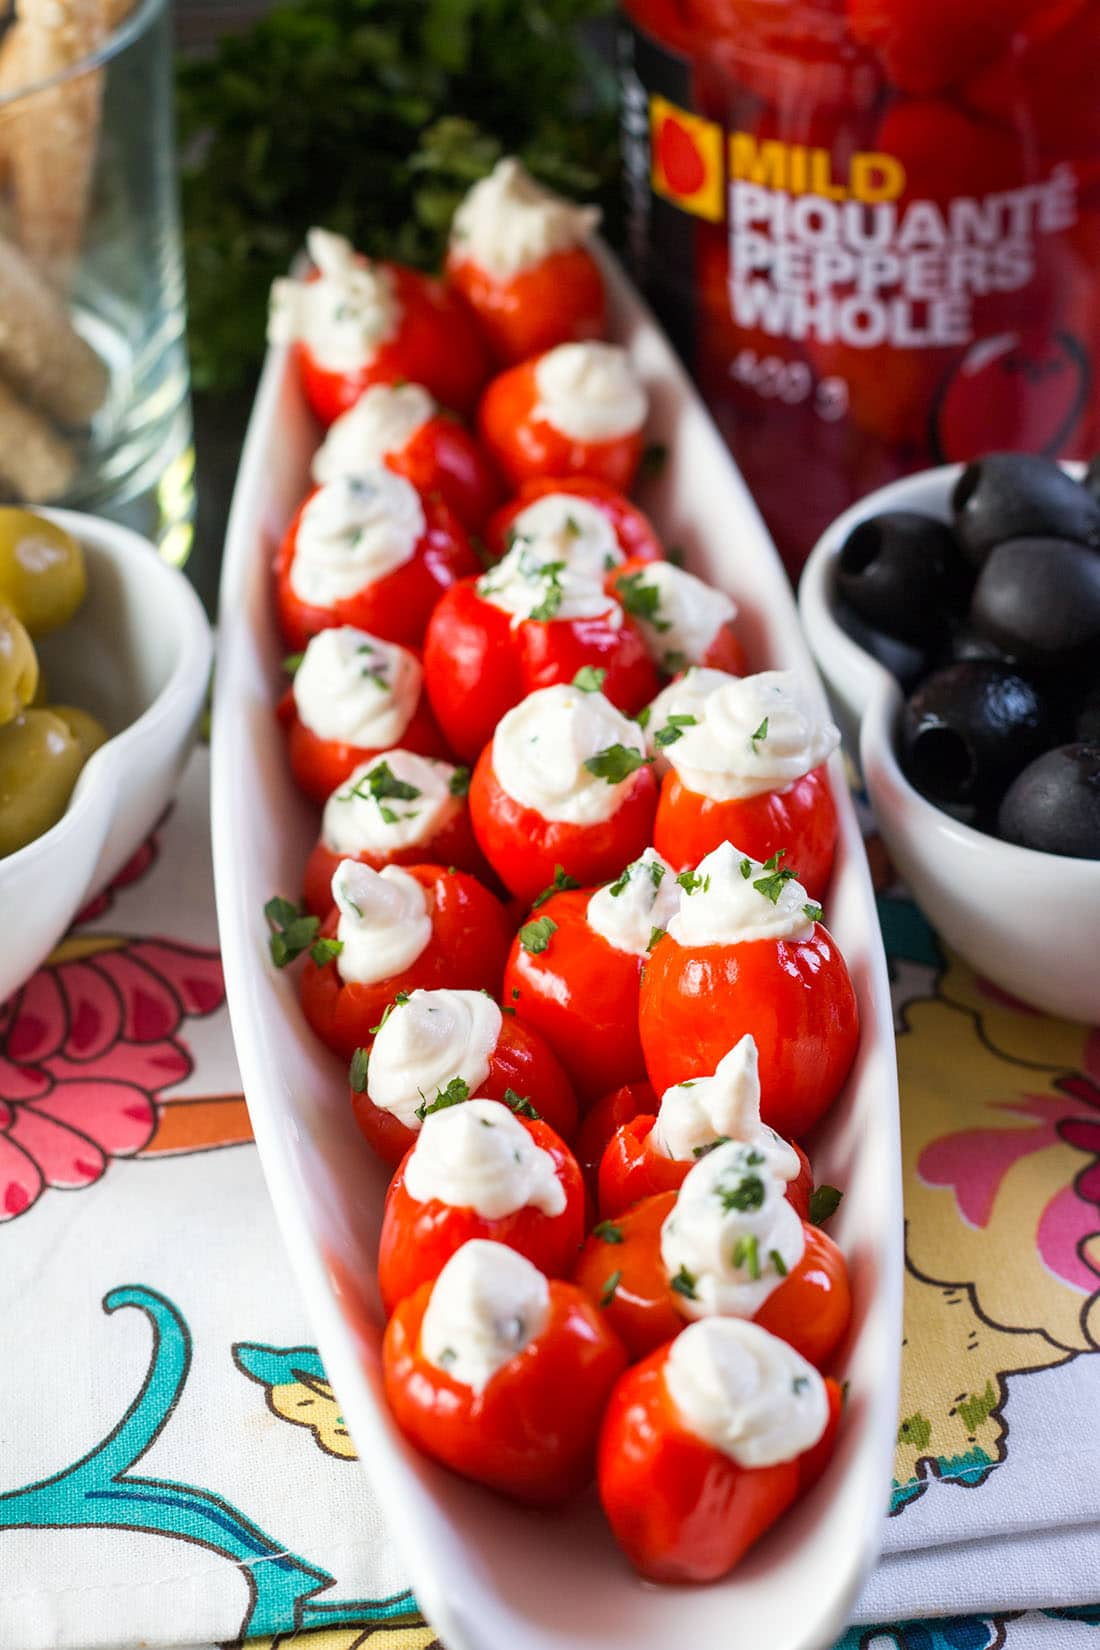 A plate of the stuffed peppers with bowls of olives on either side.